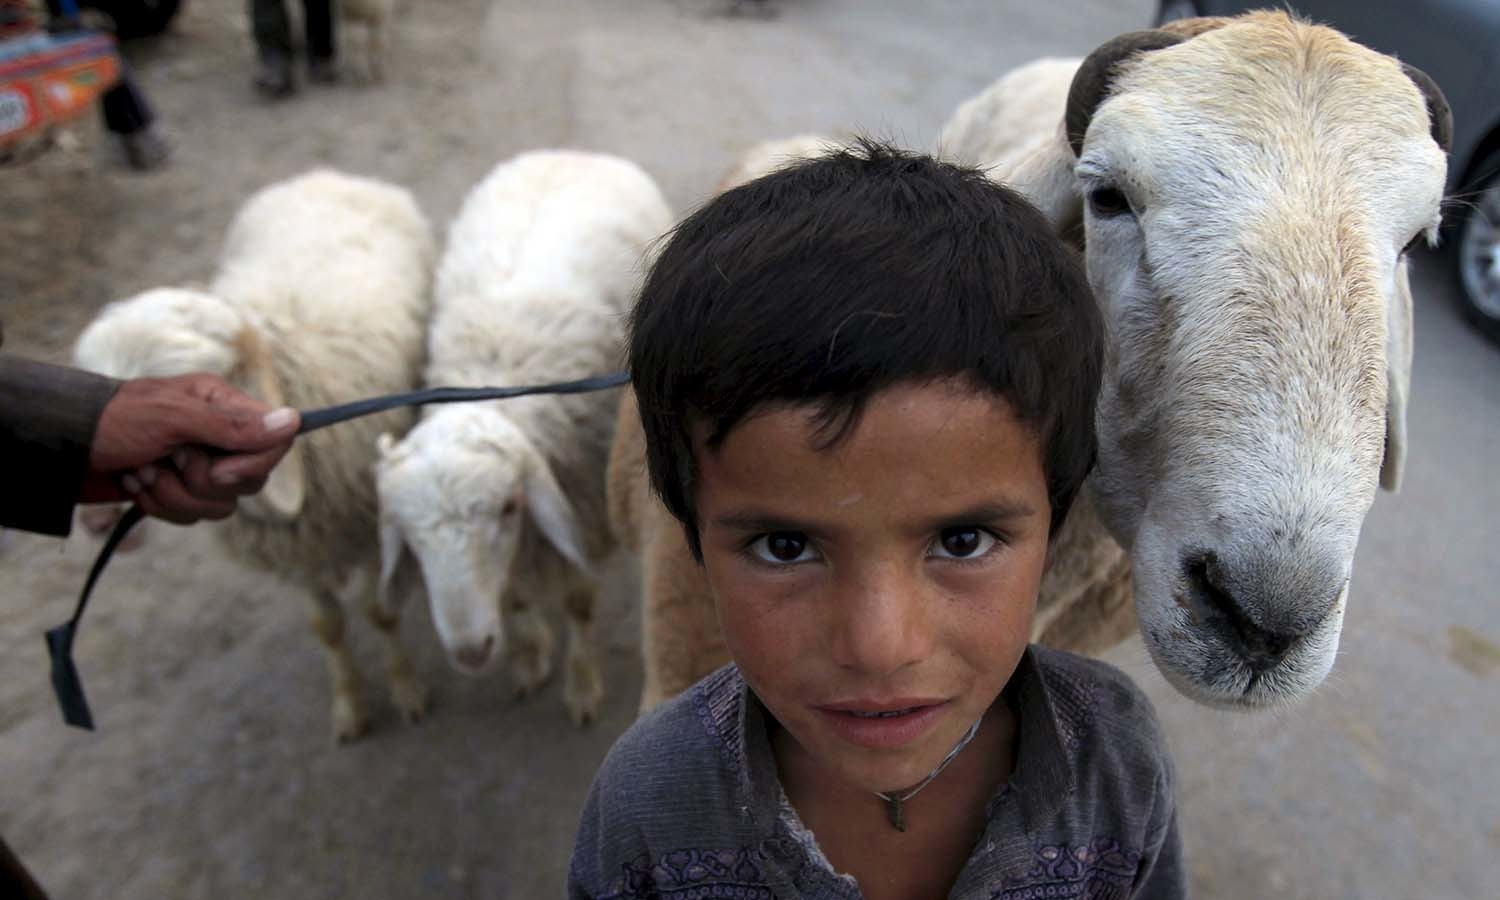 A boy poses with his sheep at an animal market in Islamabad. ─ Reuters